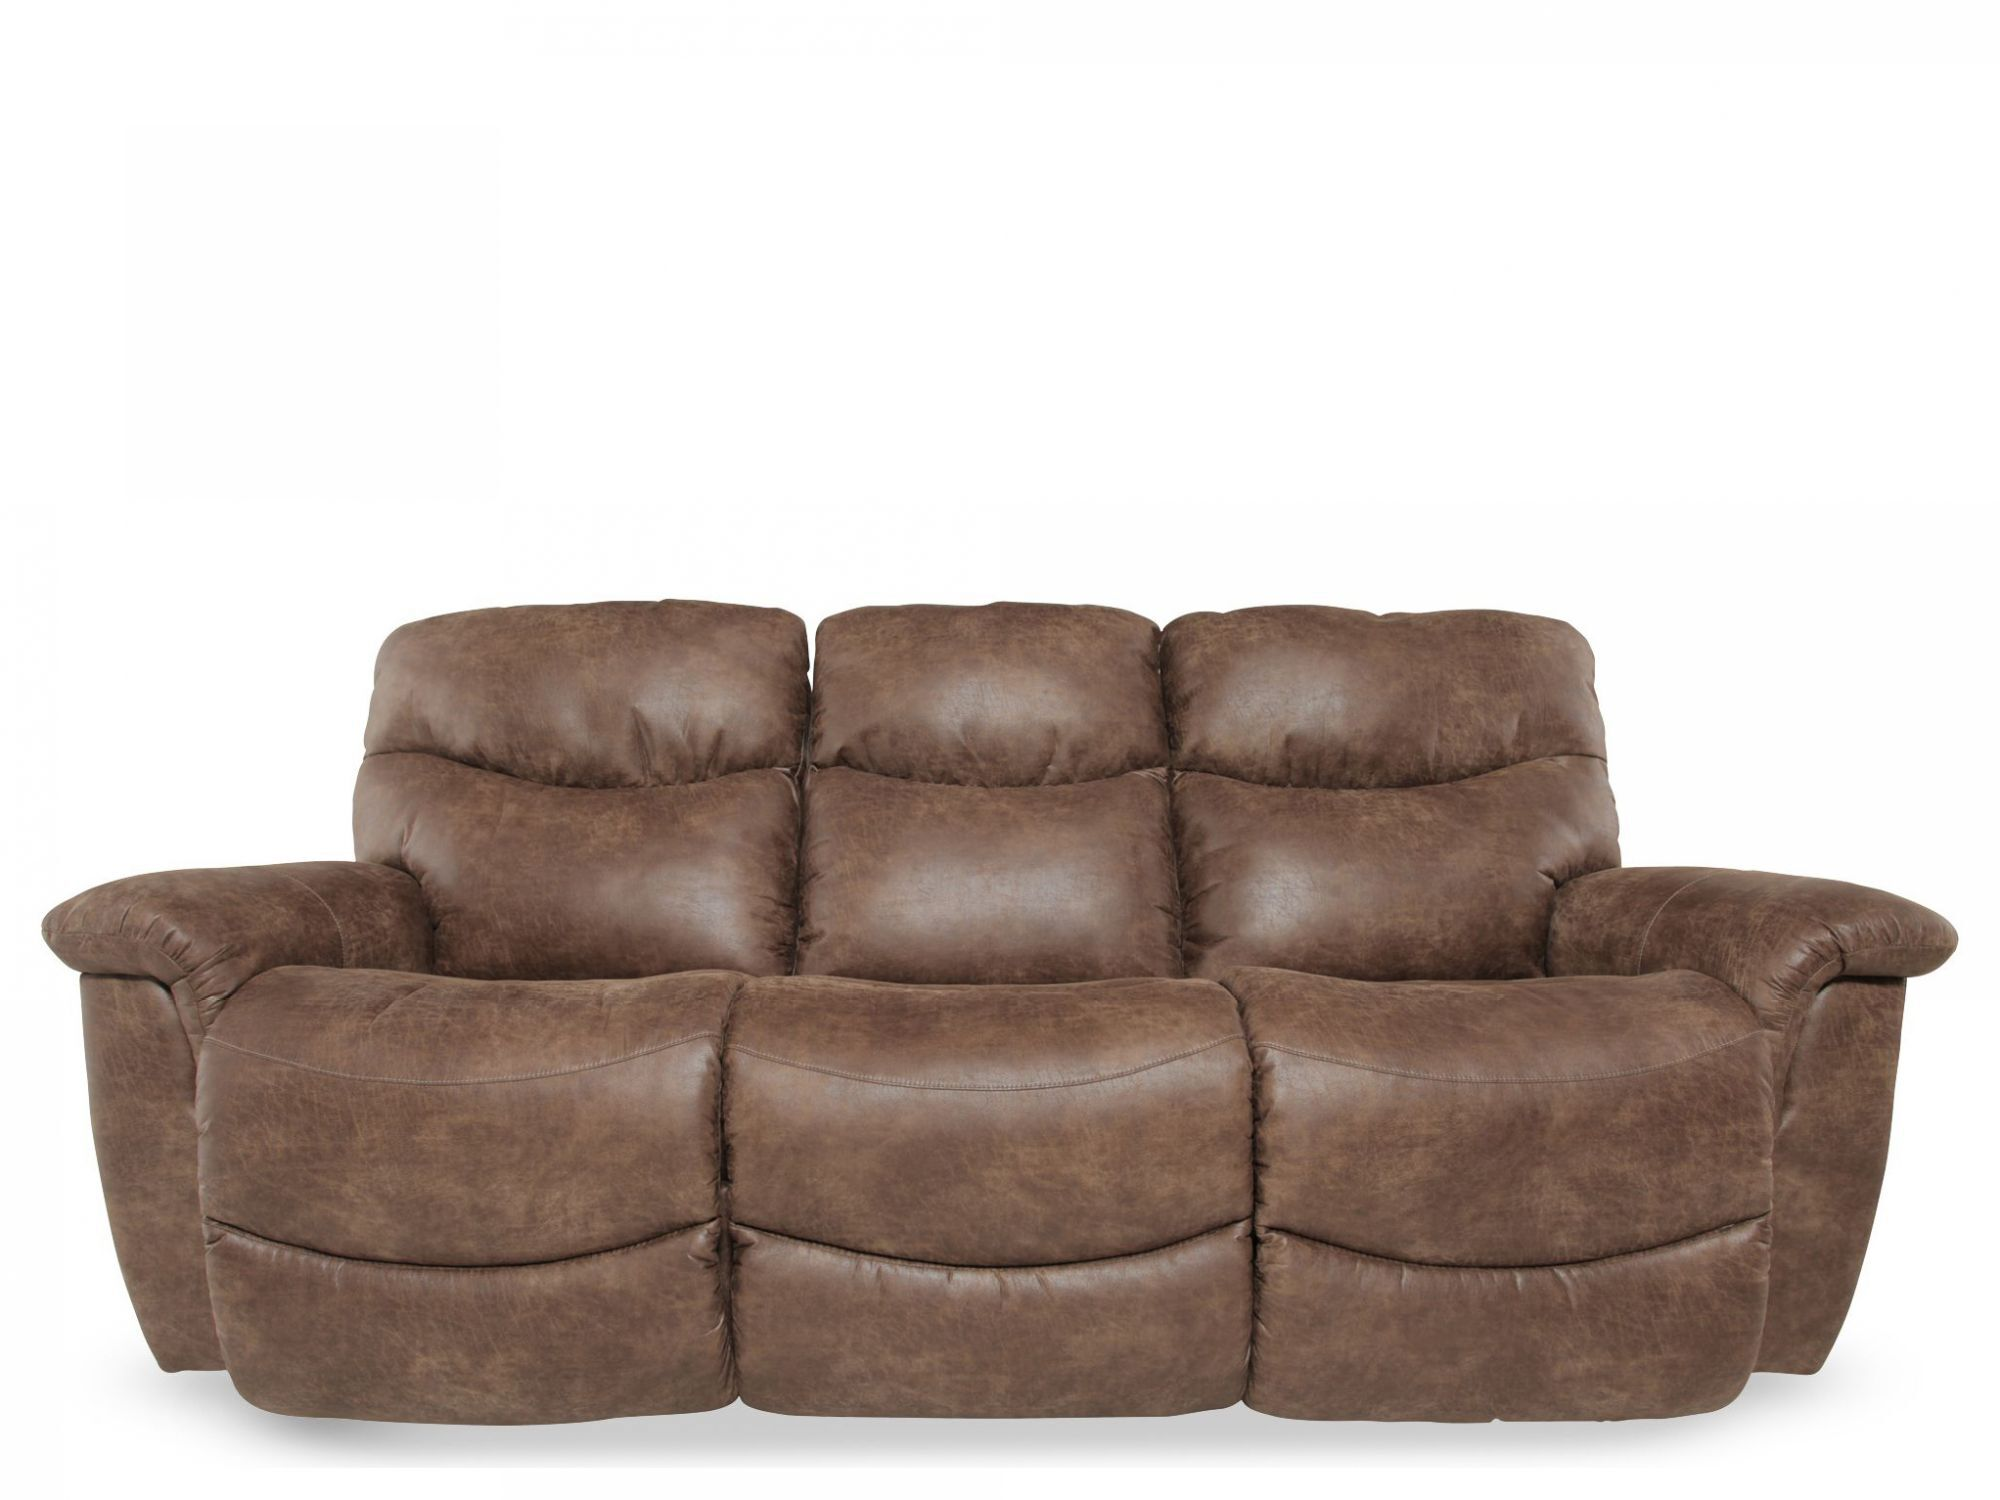 La-Z-Boy James Silt Performance Leather Reclining Sofa  sc 1 st  Mathis Brothers : lazy boy love seat recliner - islam-shia.org